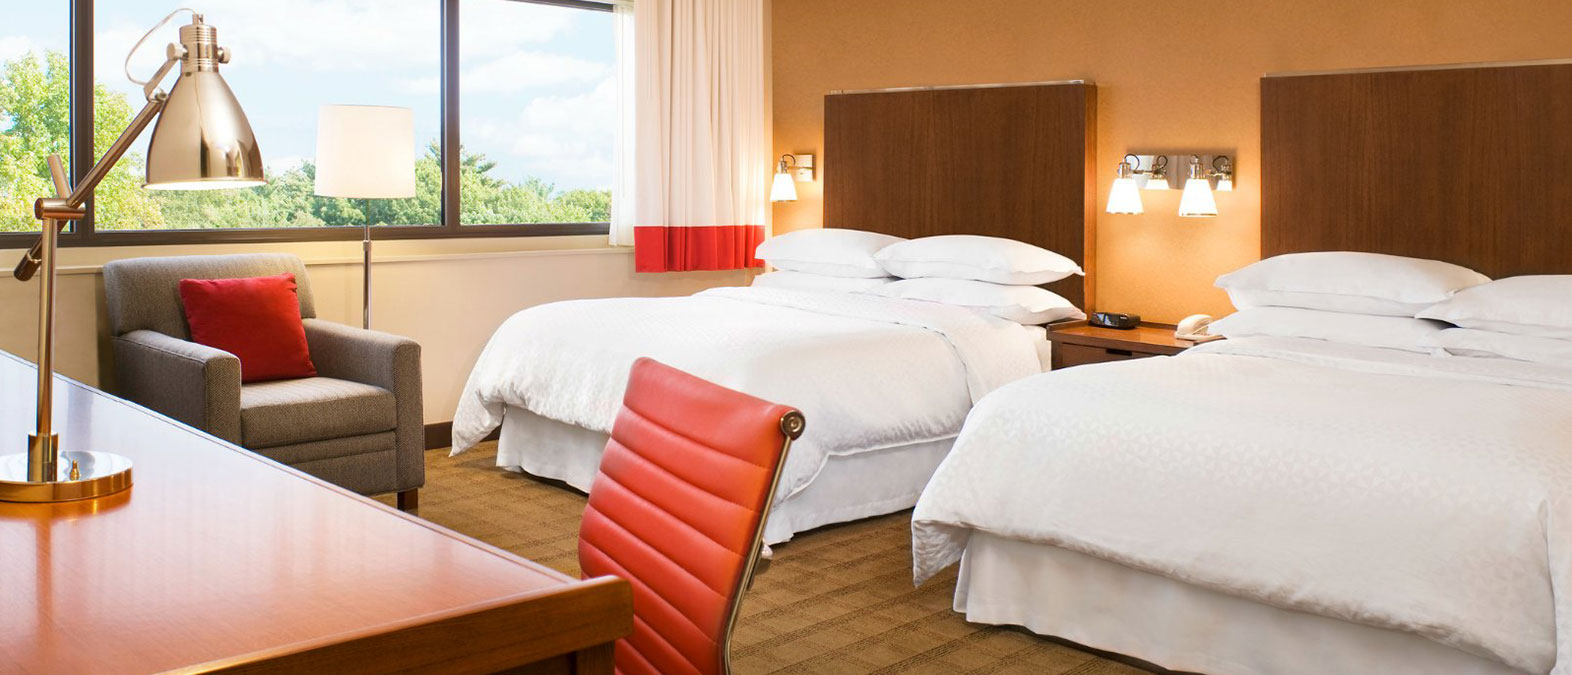 offers affordable rate and packages and luxury hotel amenities at Minot